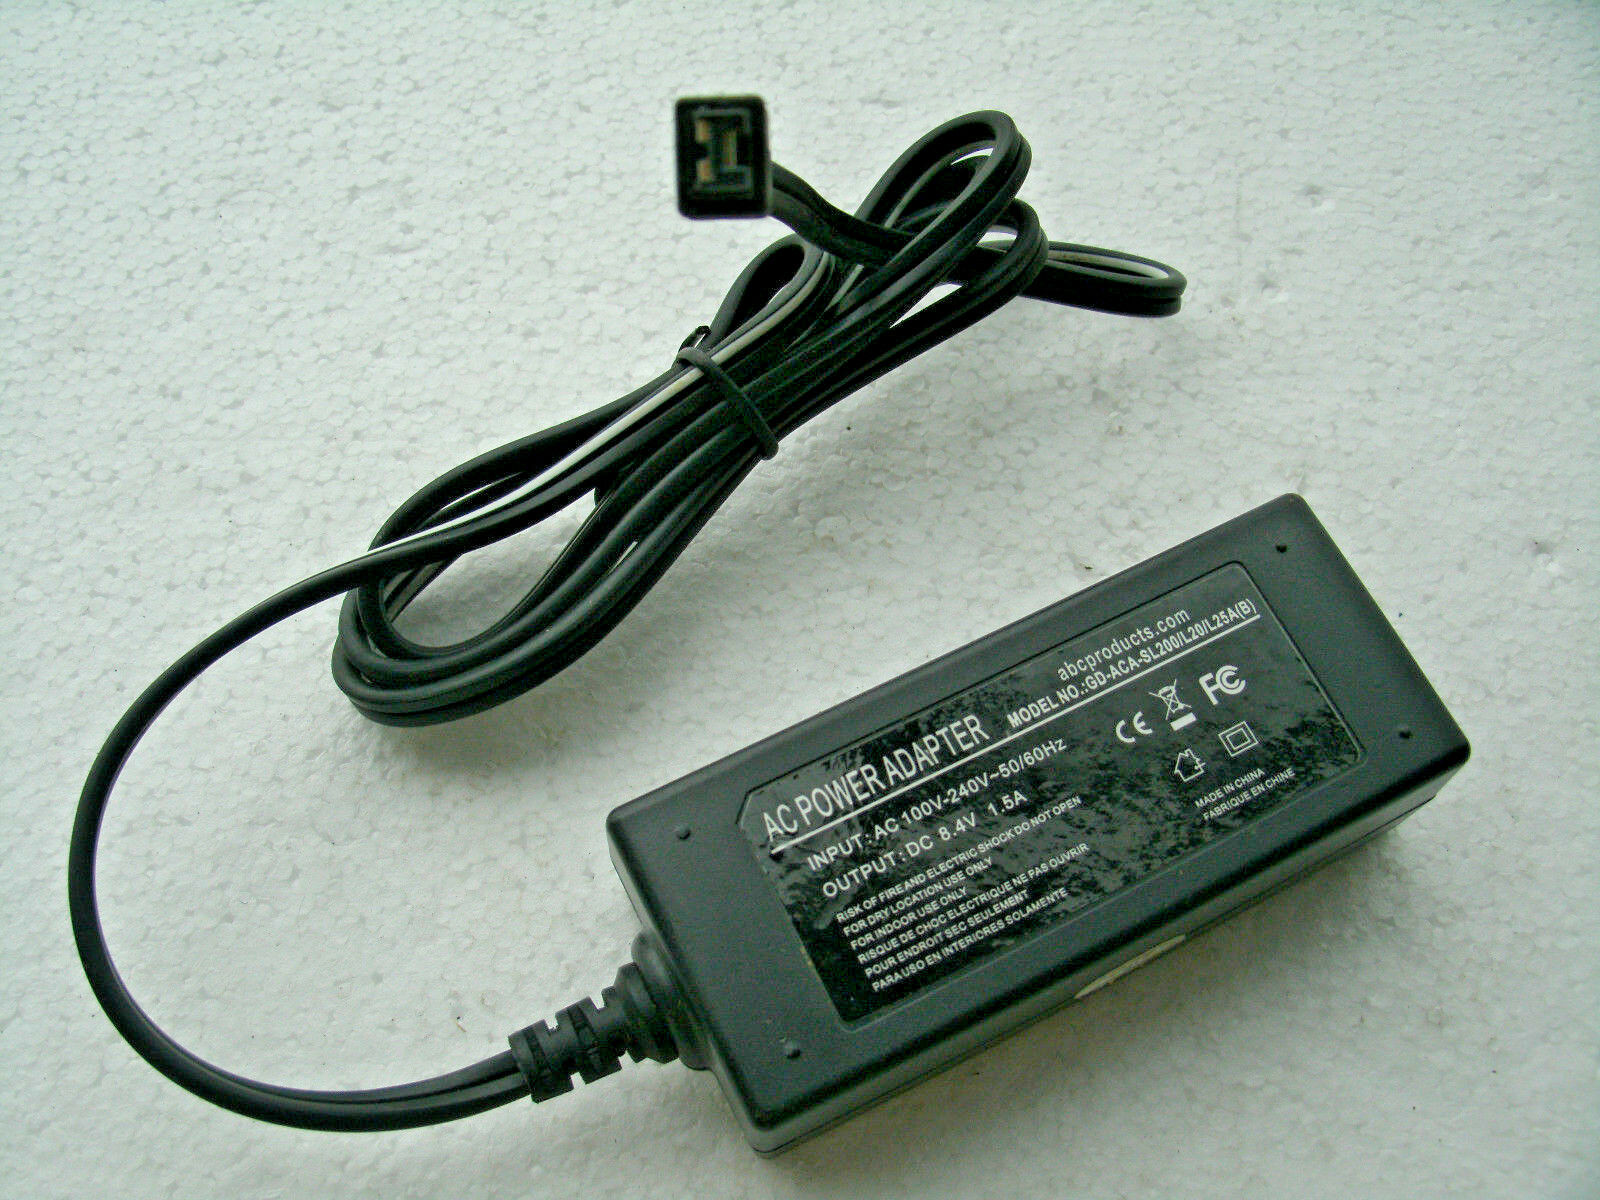 AC POWER ADAPTER 8.4V 1.5A